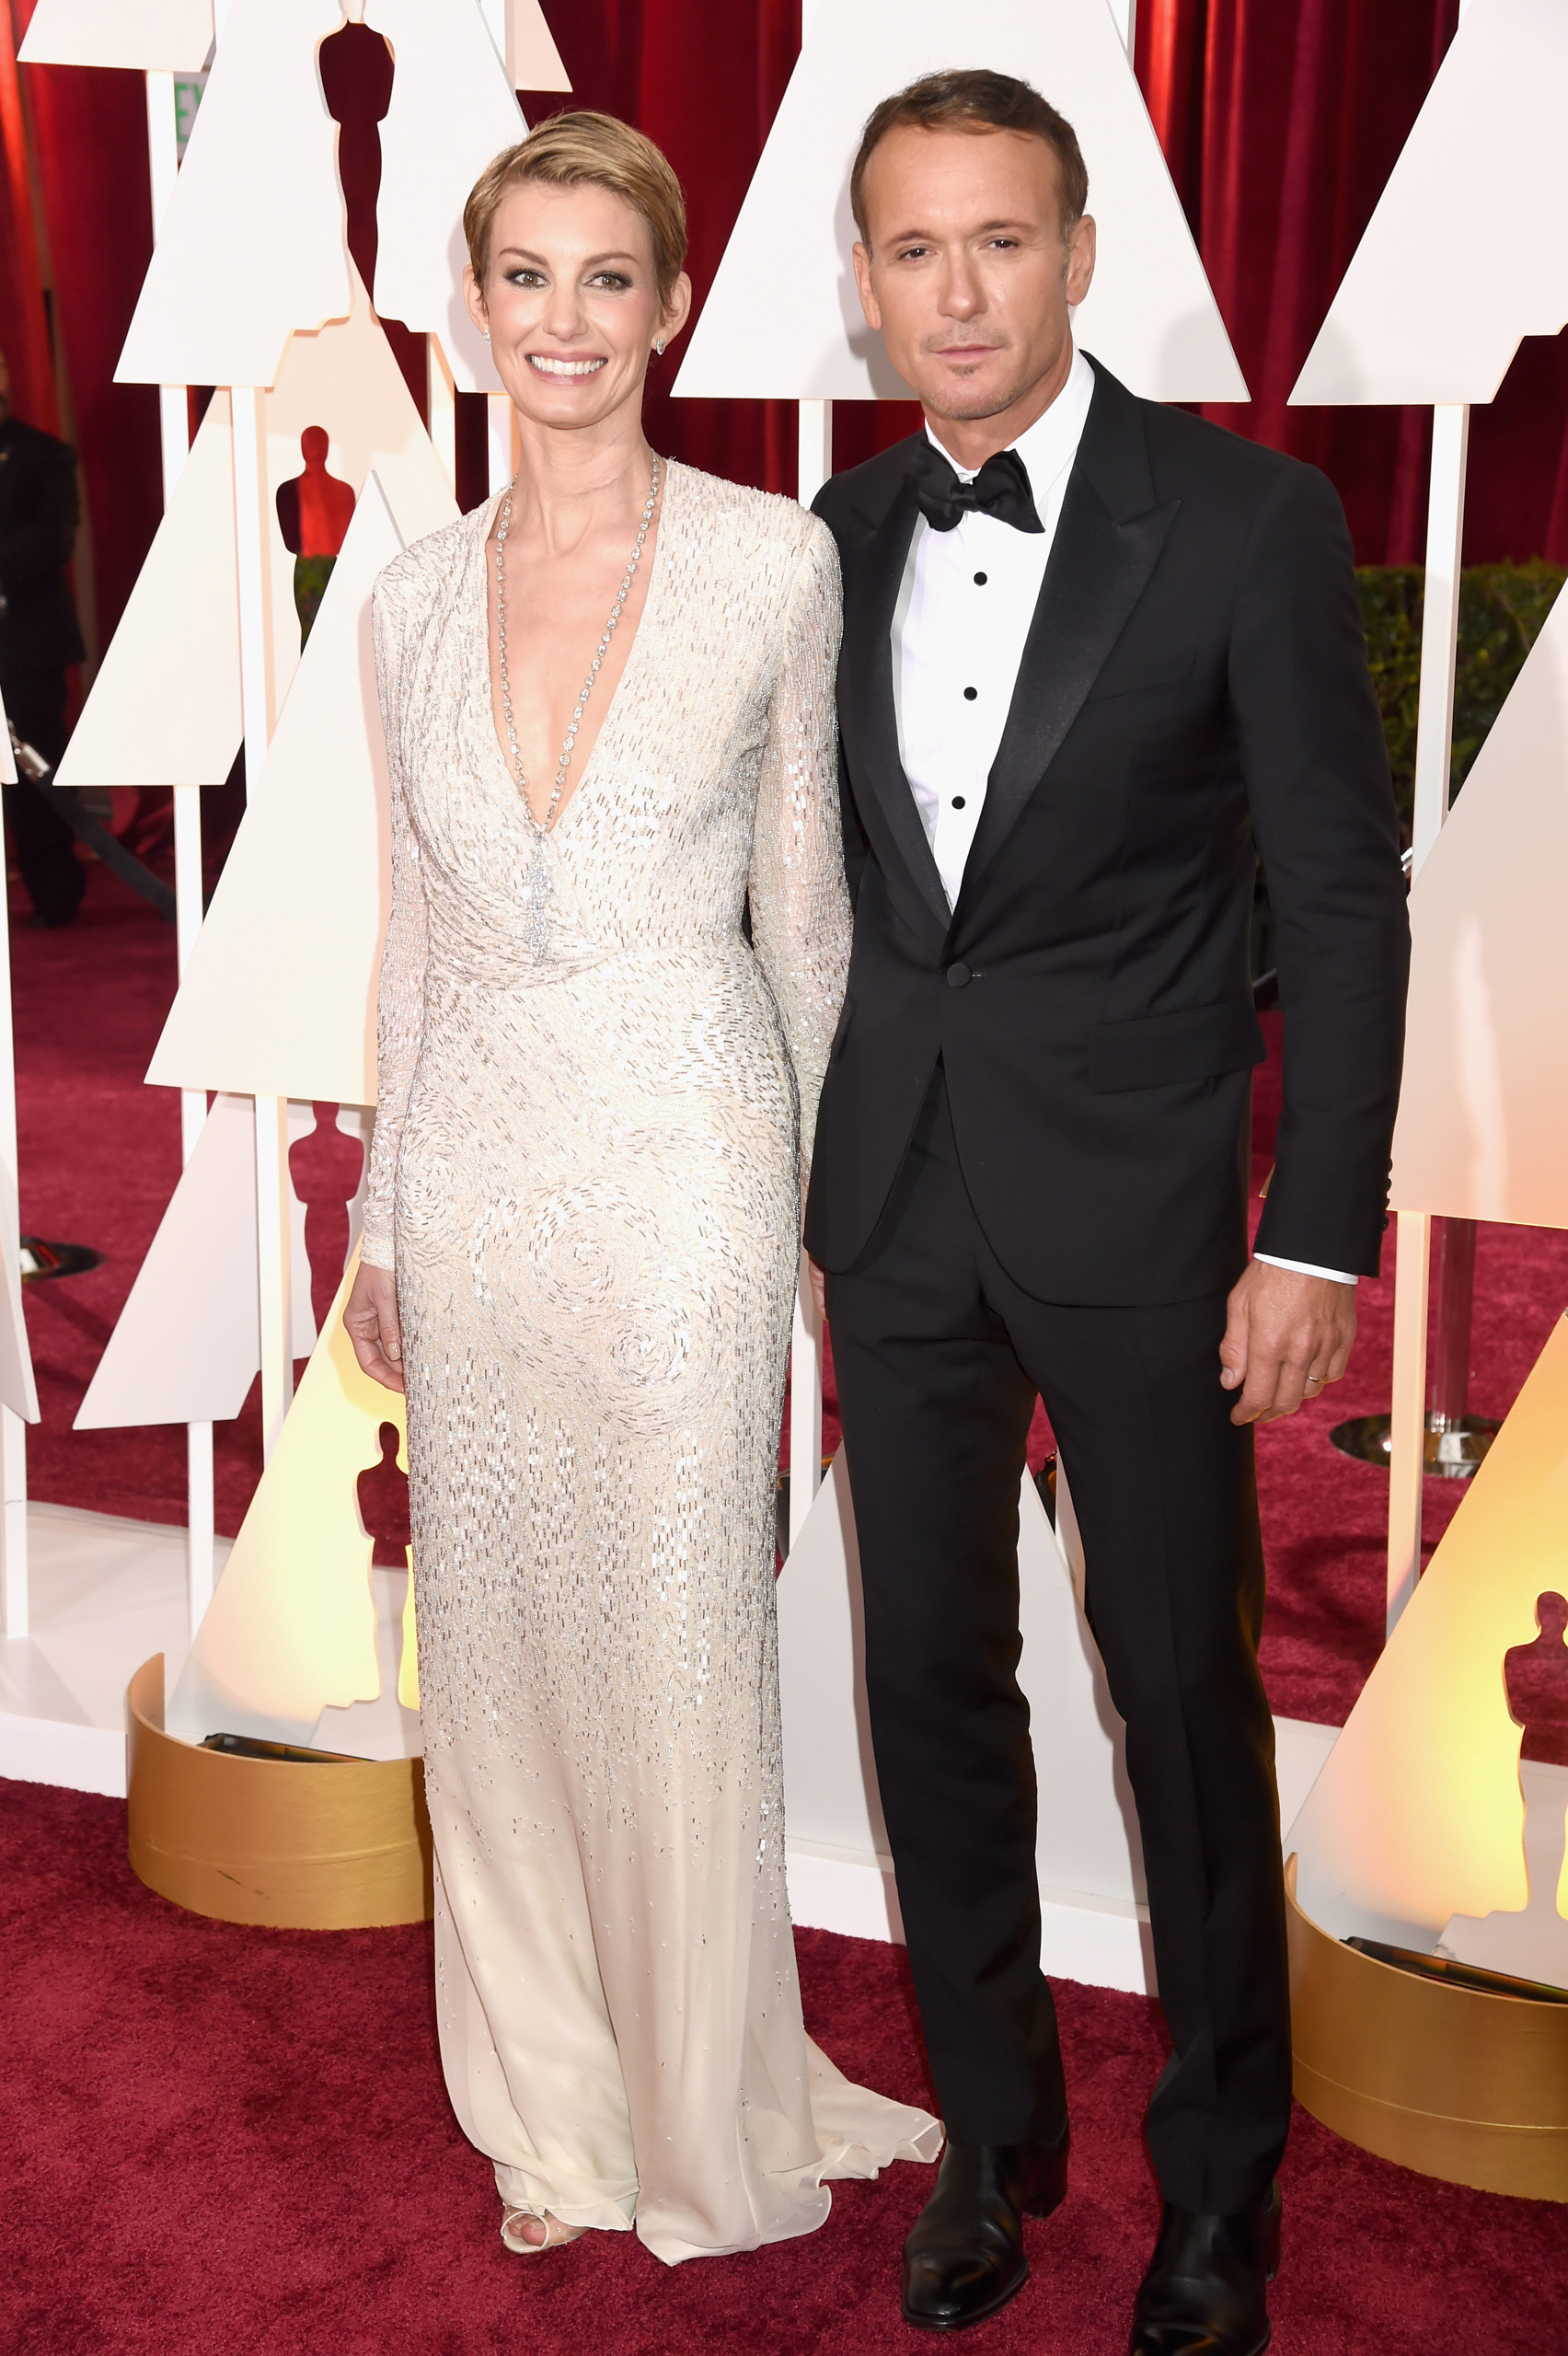 Faith Hill and Tim McGraw attend the 87th Annual Academy Awards on Feb. 22, 2015 in Hollywood, Calif.